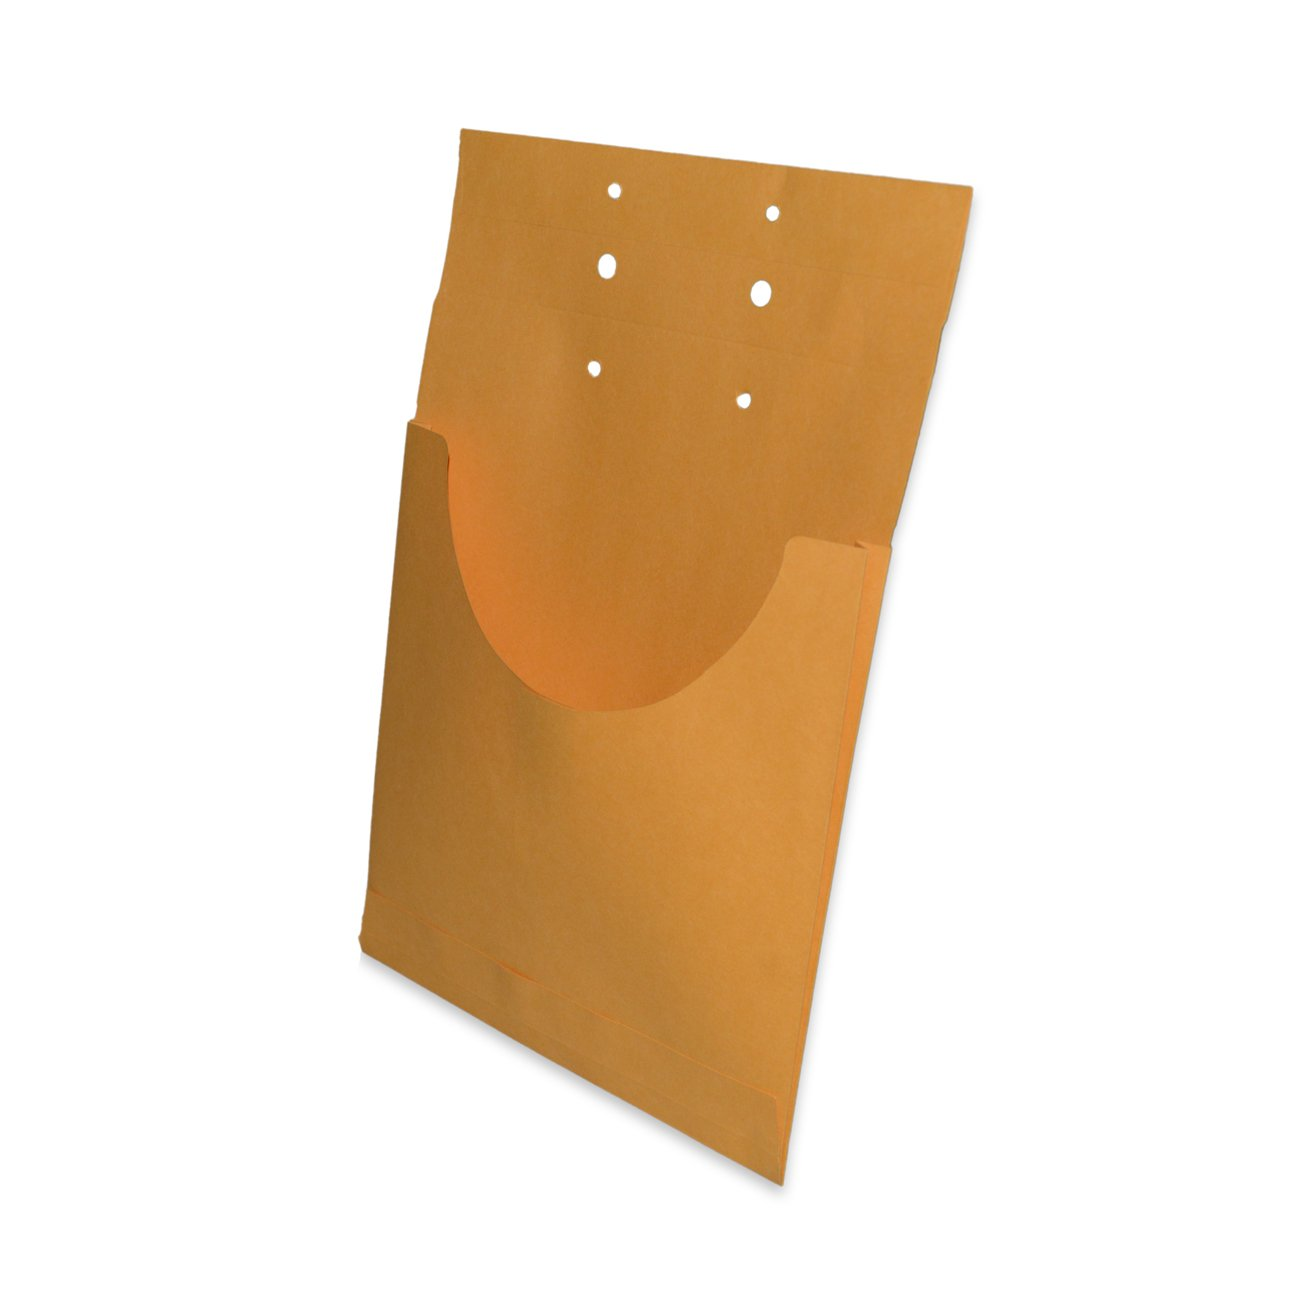 ALL-STATE LEGAL Retention Jacket, Classification Jacket, Legal/Letter Size, 1'' Expansion, Kraft, 100 per Box